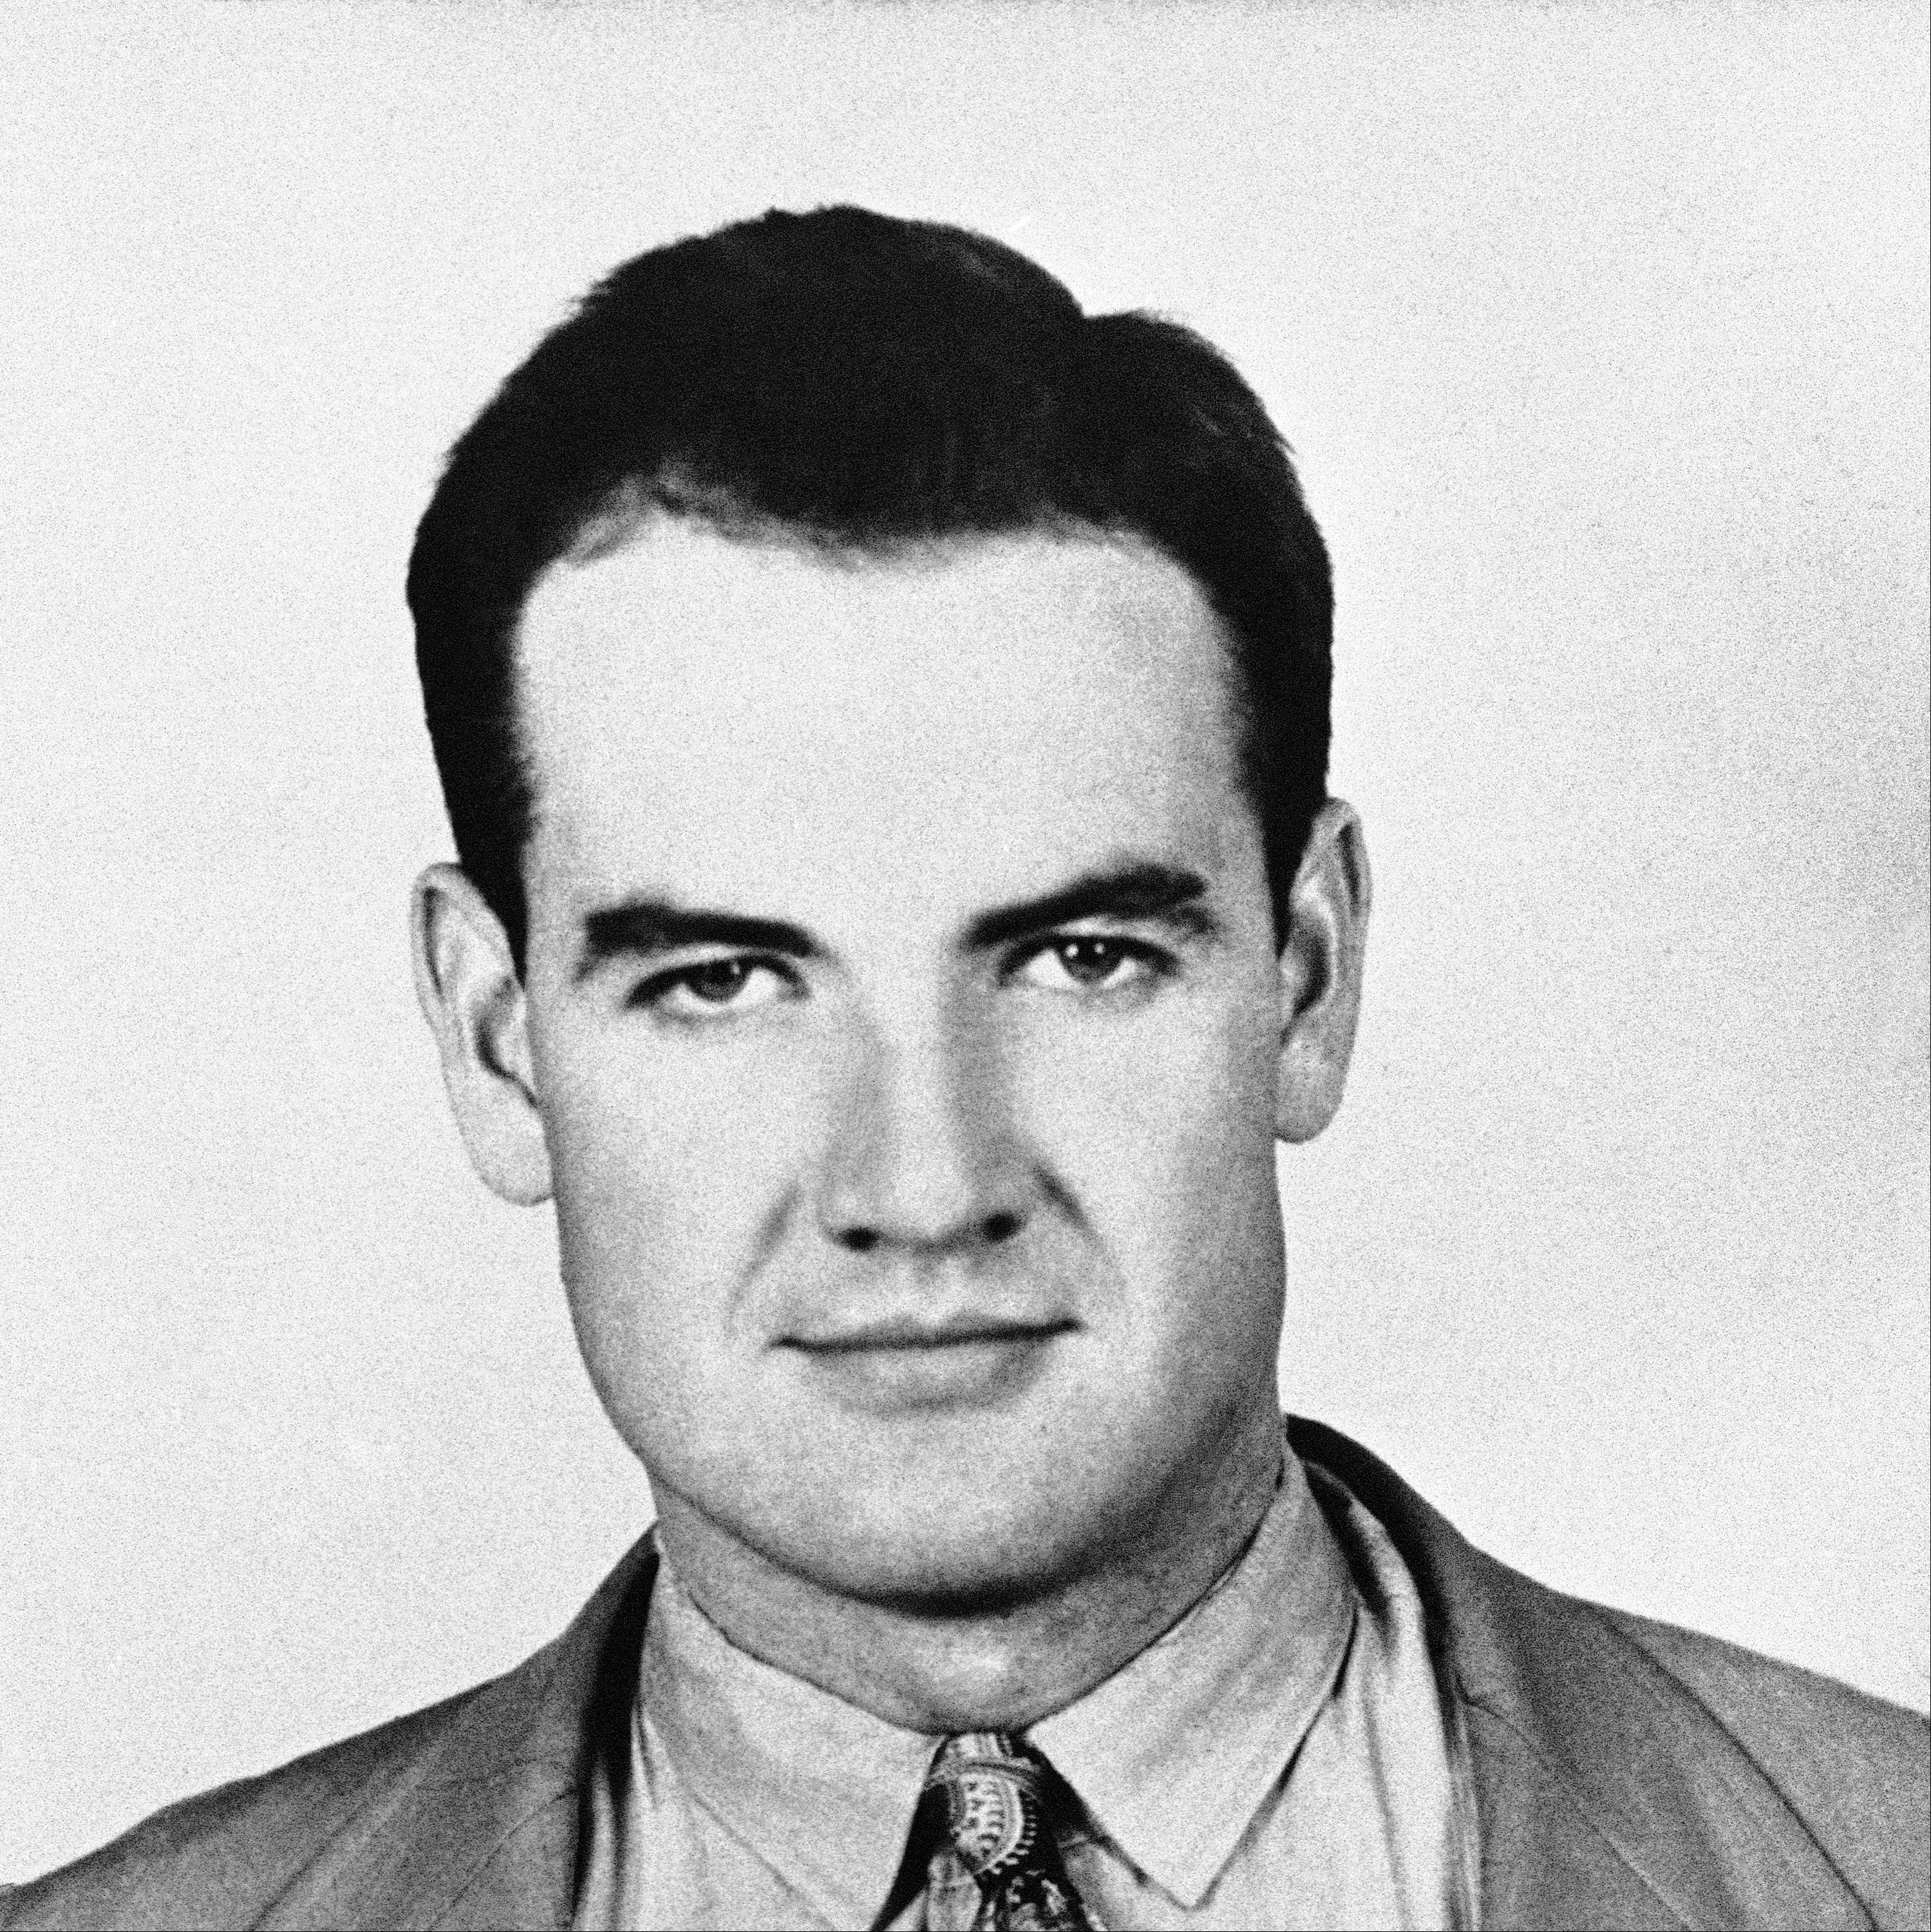 George McGovern in high school, 1939.